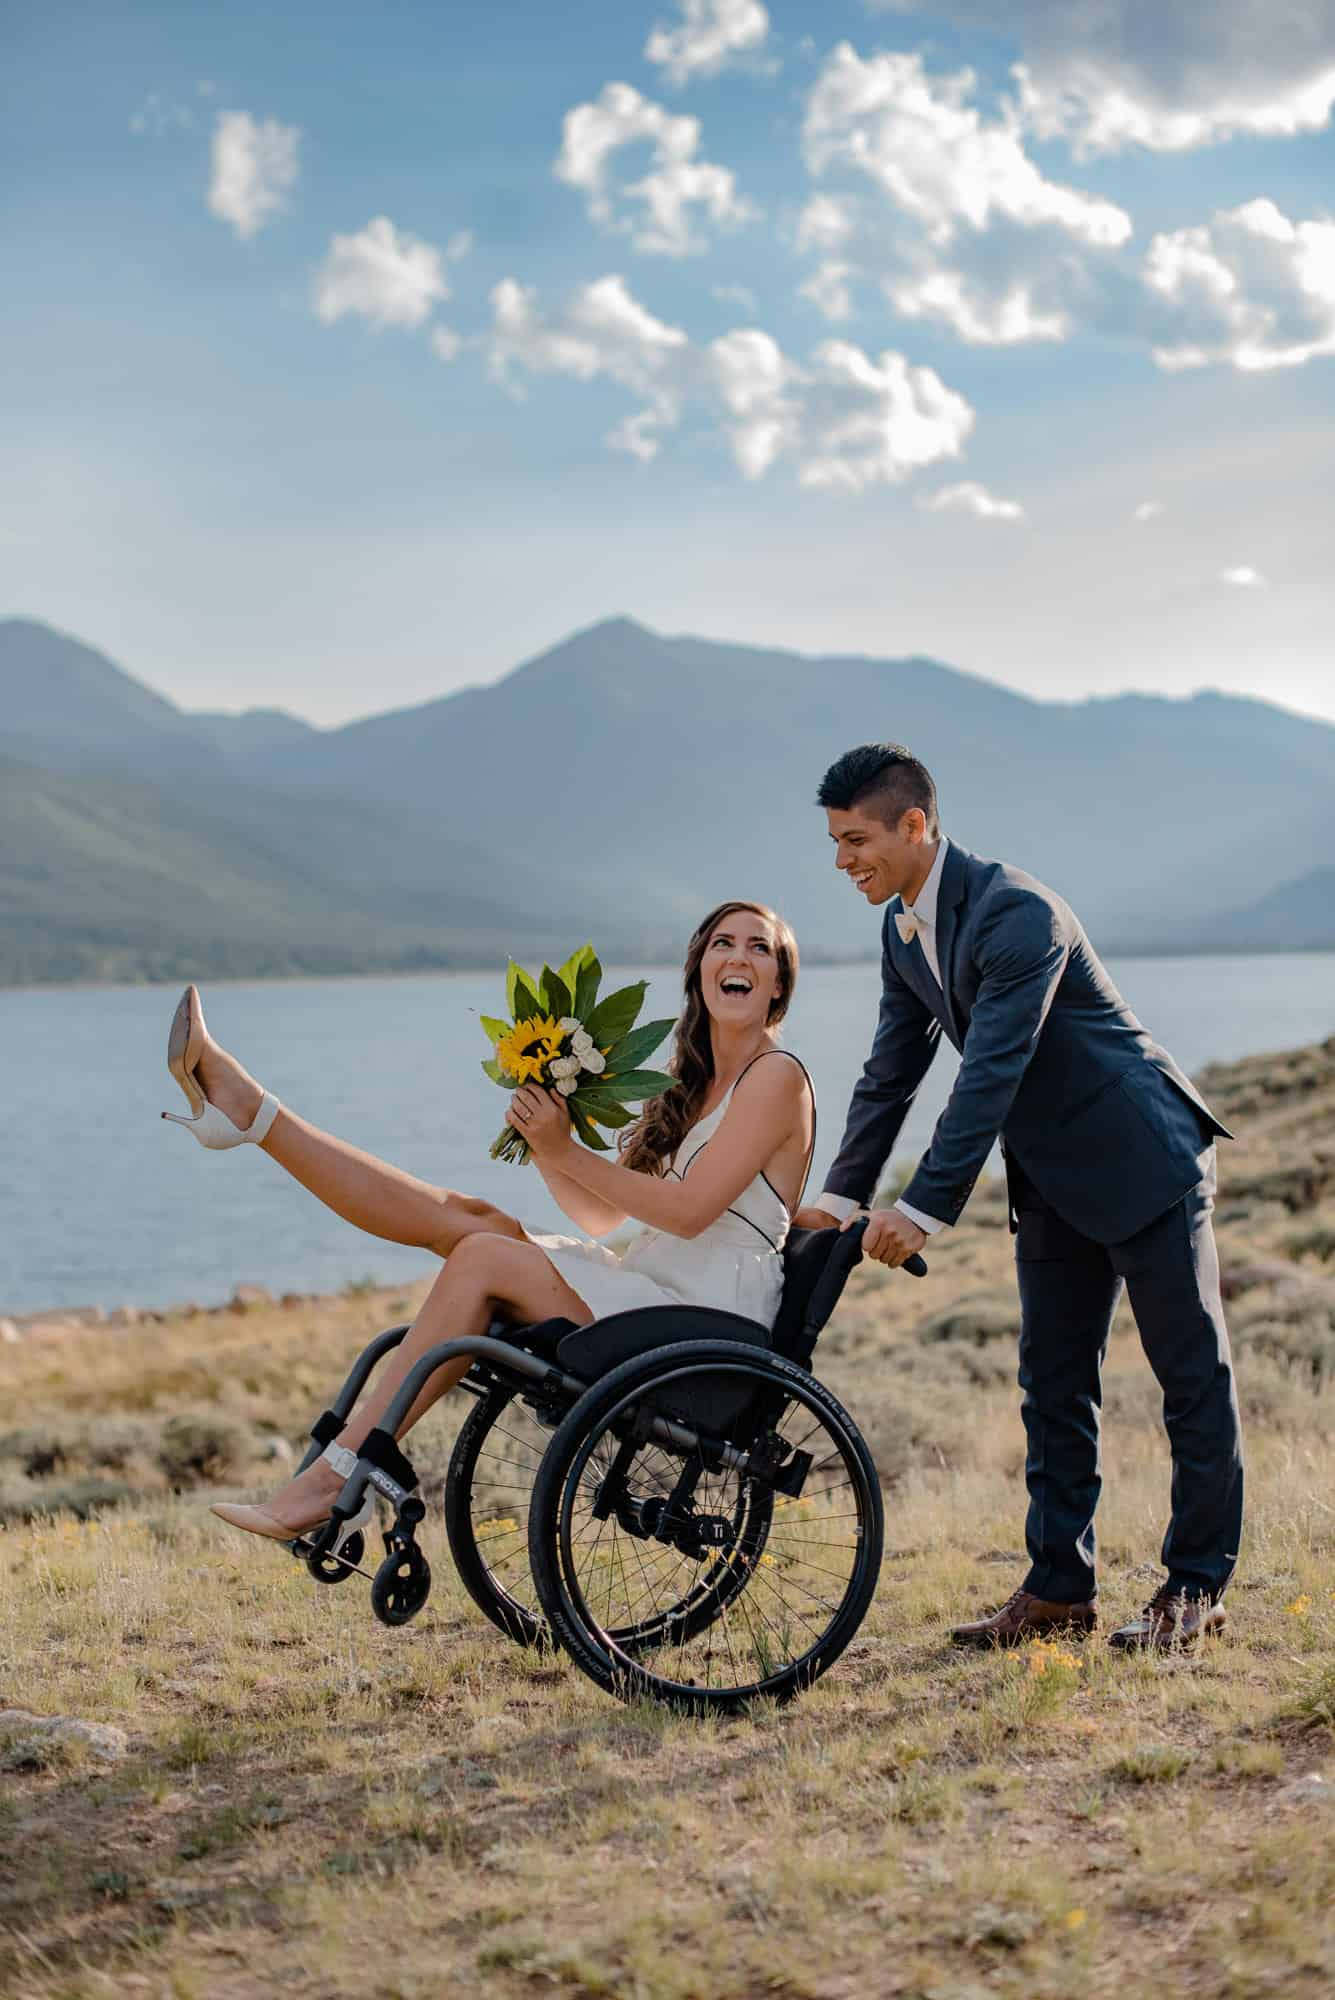 bride and group happy they are eloping during the pandemic as groom tilts brides wheelchair playfully and she kicks one leg out